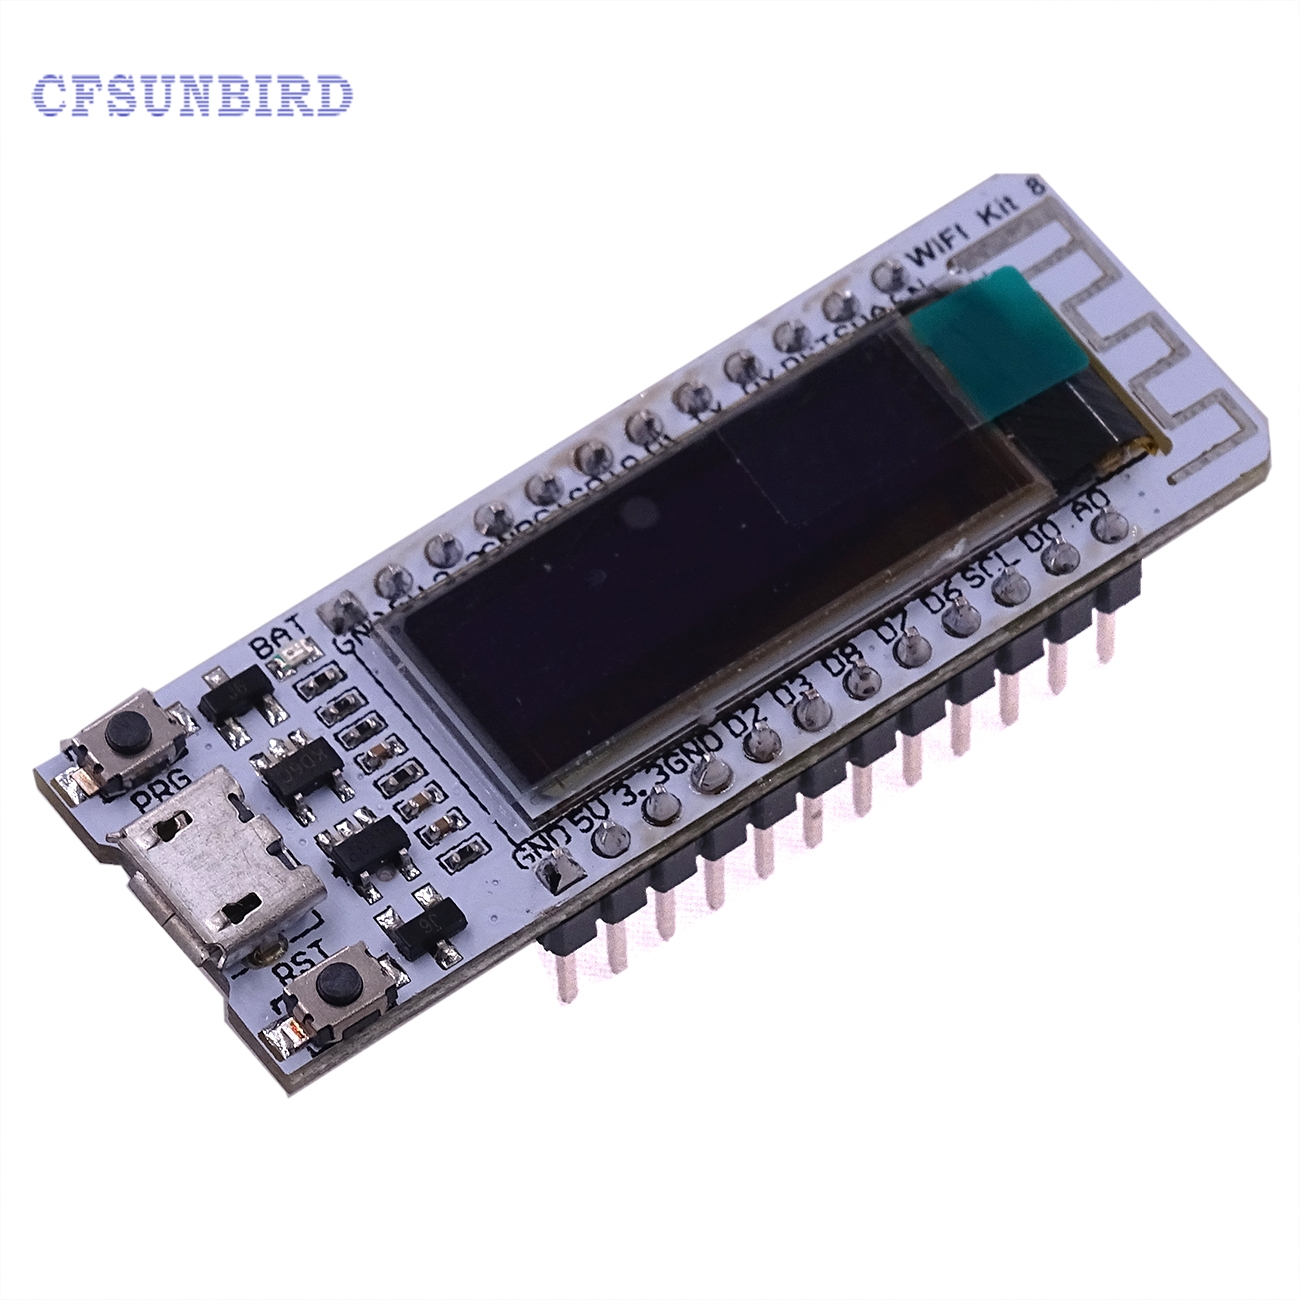 1pcs ESP8266 WIFI Chip 0.91 inch OLED CP2014 32Mb Flash ESP 8266 Module Internet of things Board PCB for NodeMcu for Arduino freeshipping rs232 to zigbee wireless module 1 6km cc2530 chip